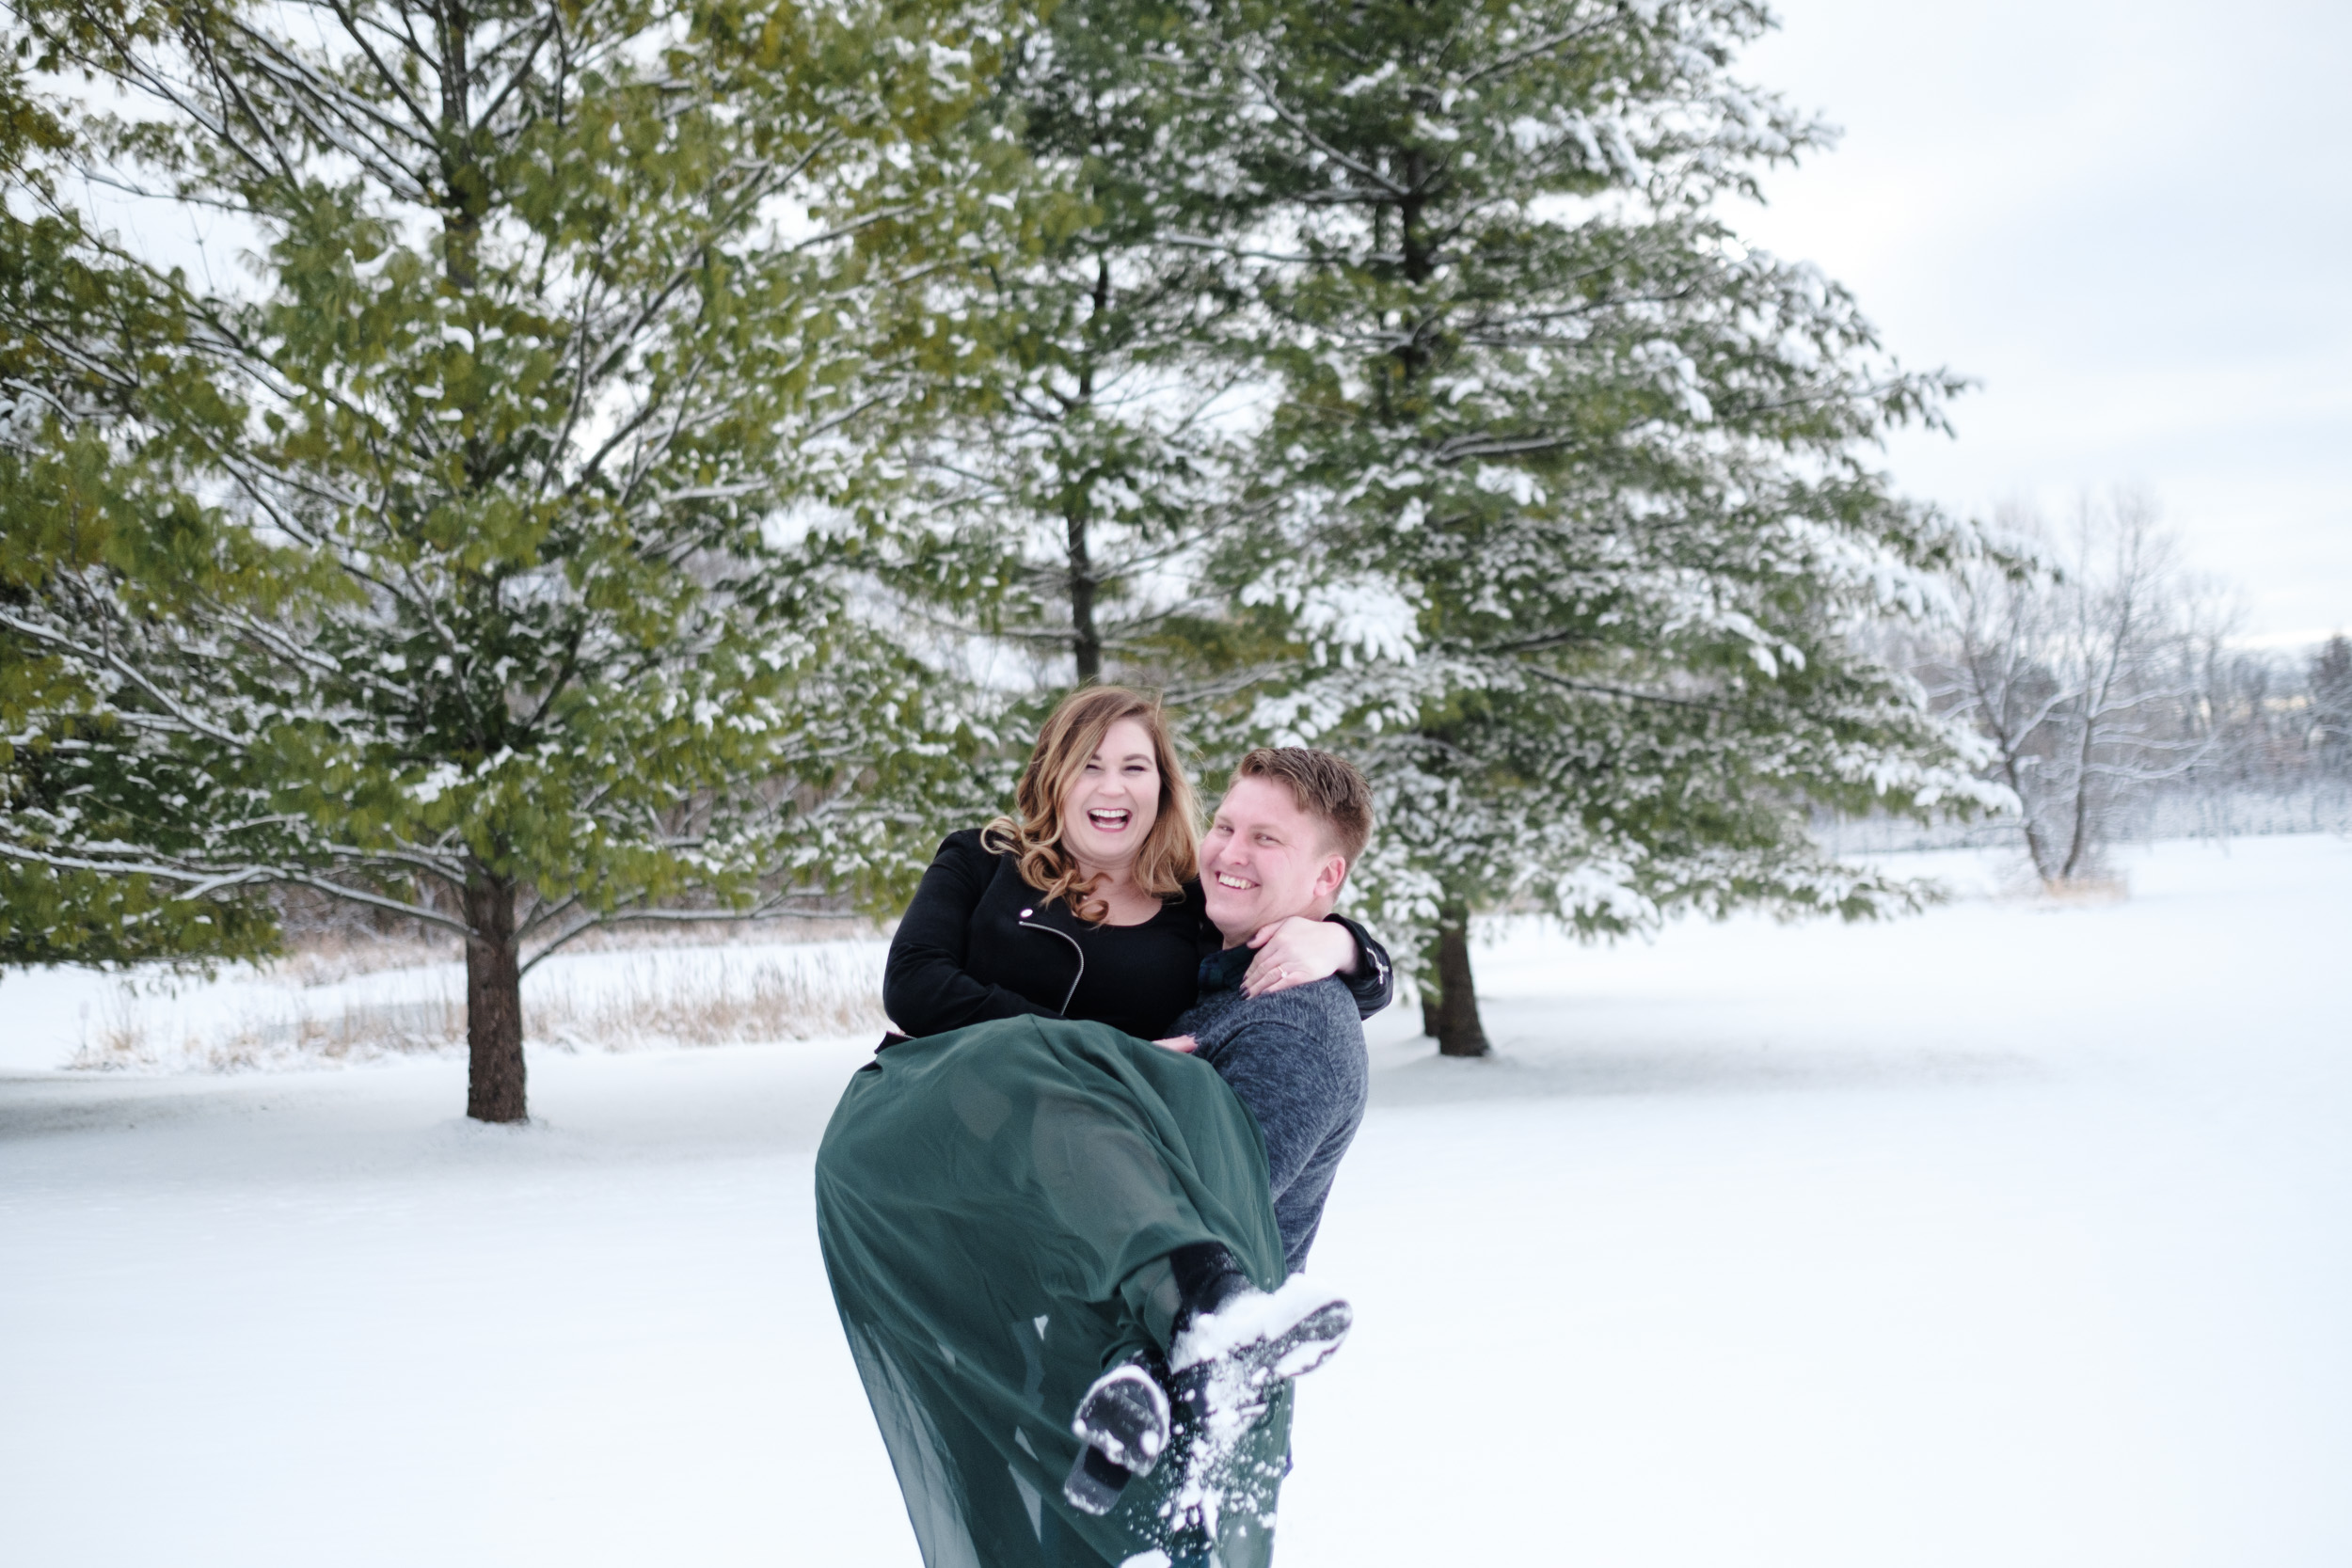 Groom carries his fiance in the snow at The Pavilion at Orchard Ridge Farms in Rockton, Illinois